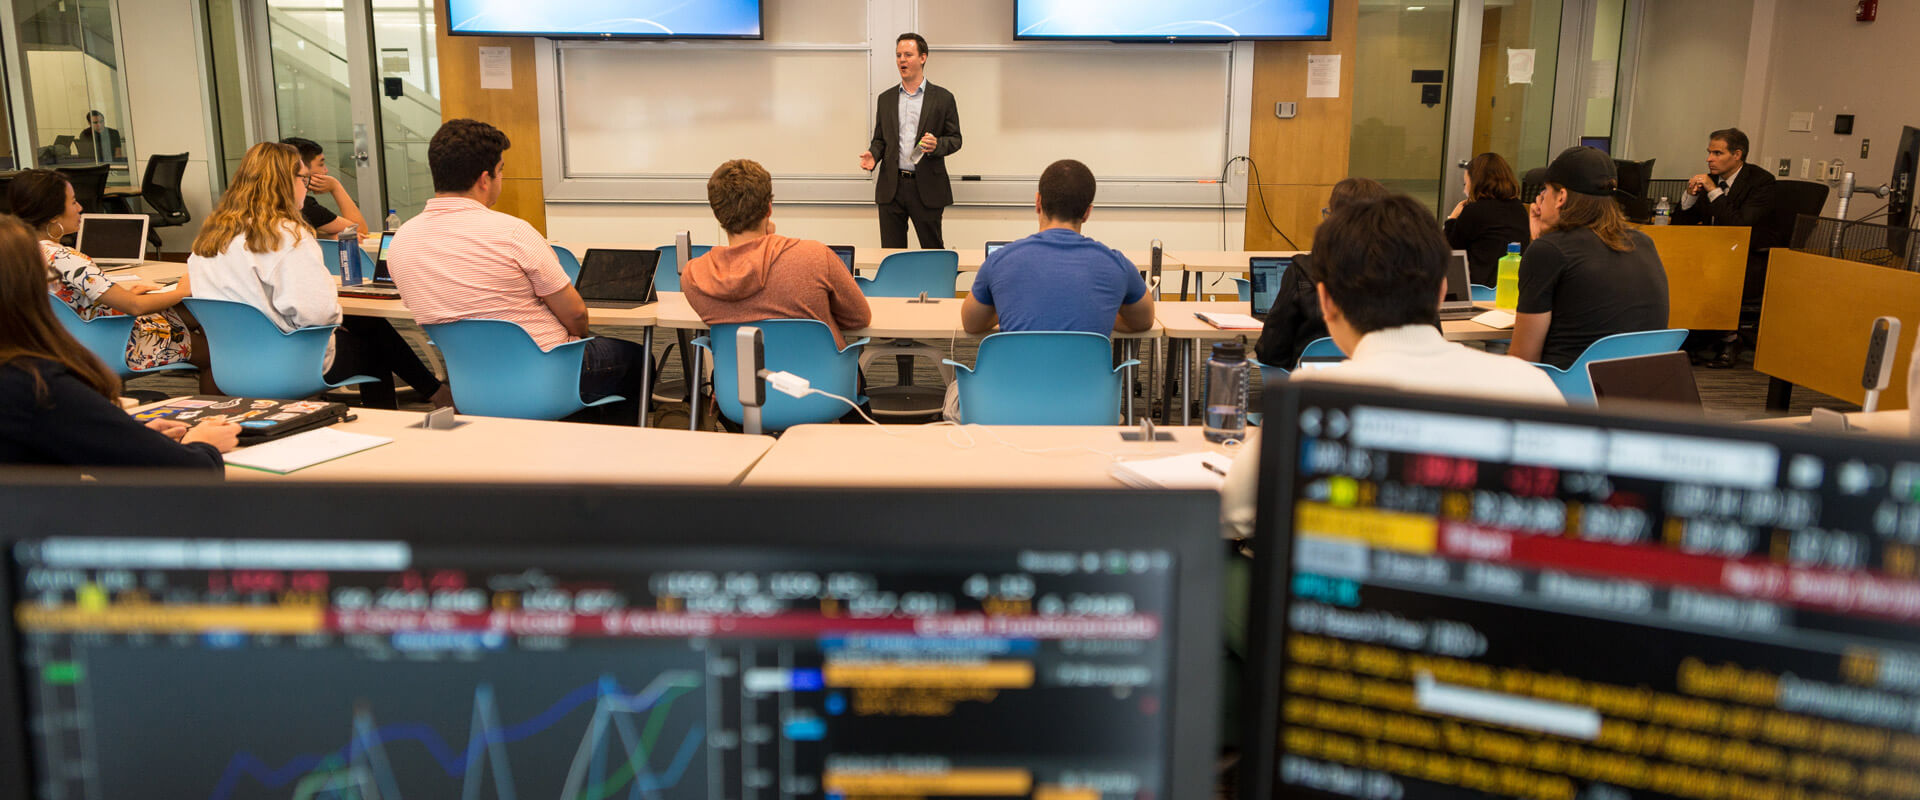 Students work on Bloomberg Terminals in the Capital Markets Room at GWSB